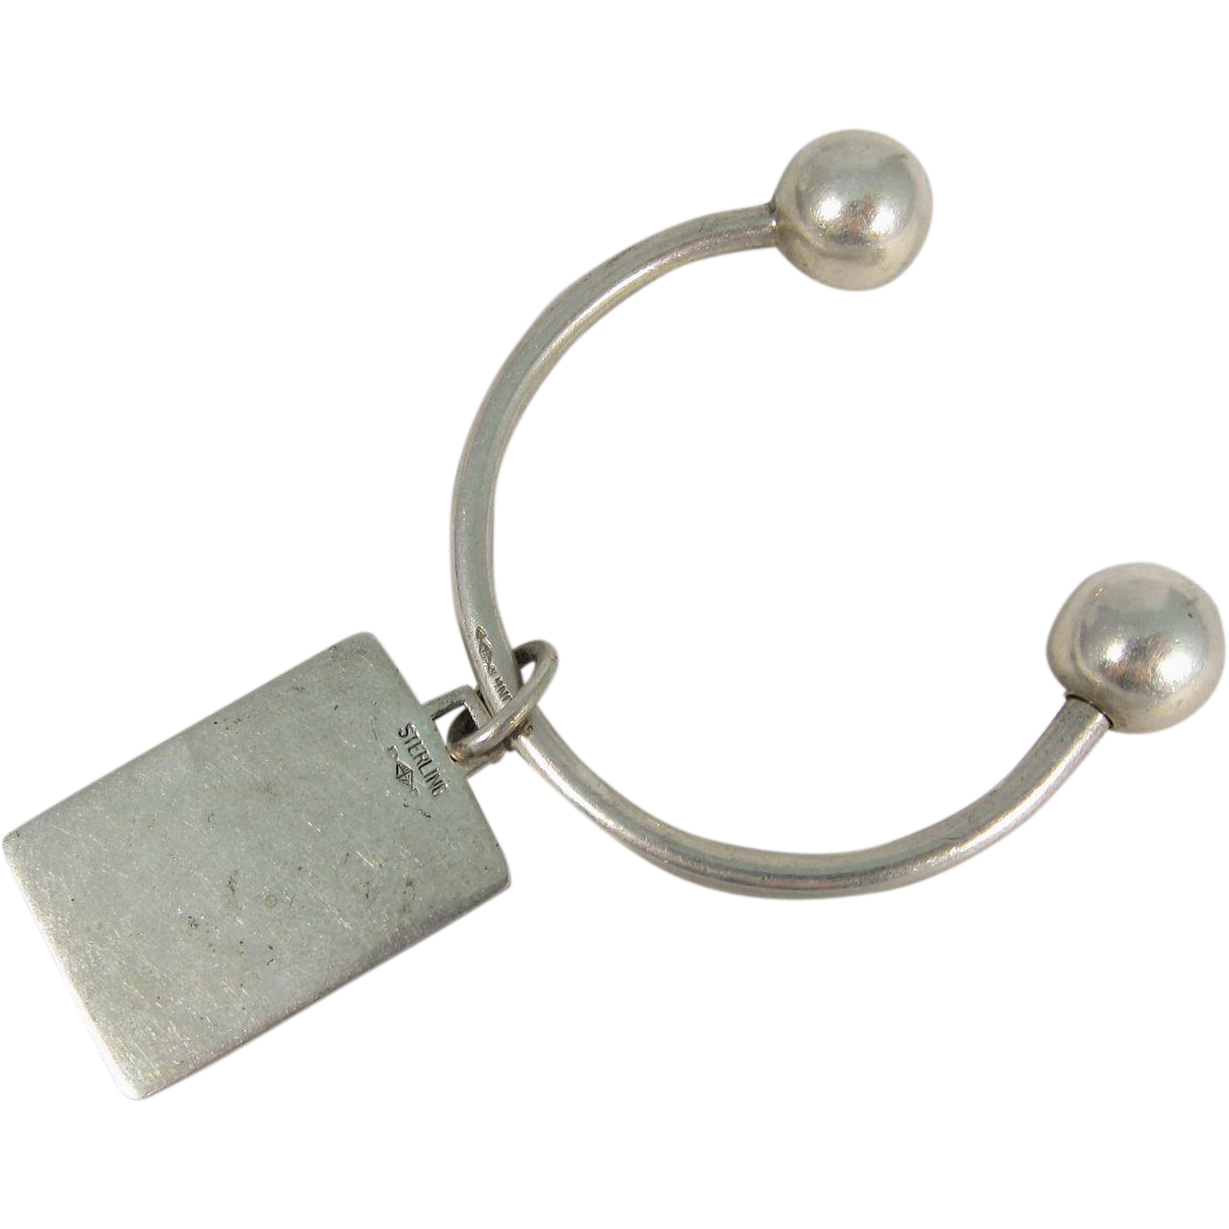 Vintage Sterling Silver Key Rig with Charm